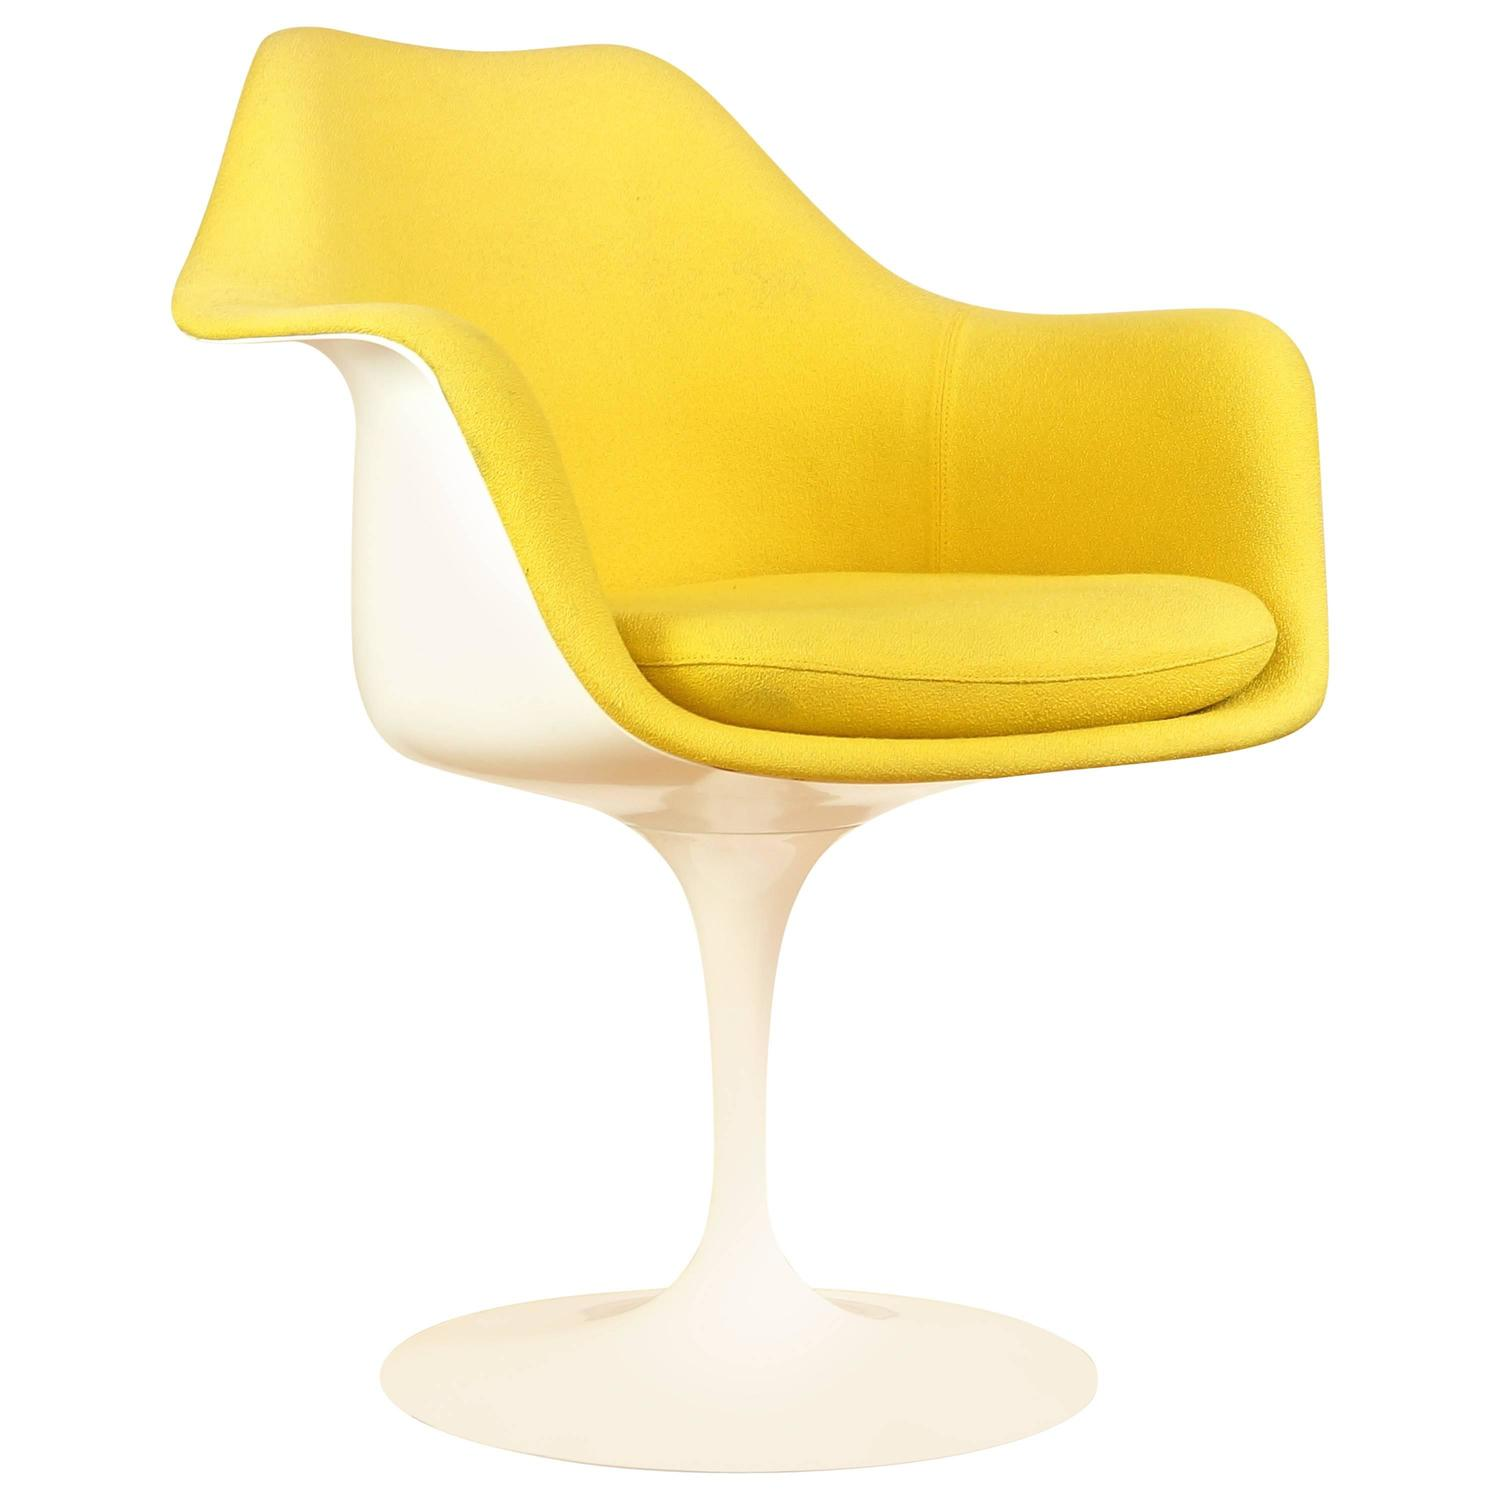 vintage tulip chair or armchair by eero saarinen for knoll yellow upholstery at 1stdibs. Black Bedroom Furniture Sets. Home Design Ideas